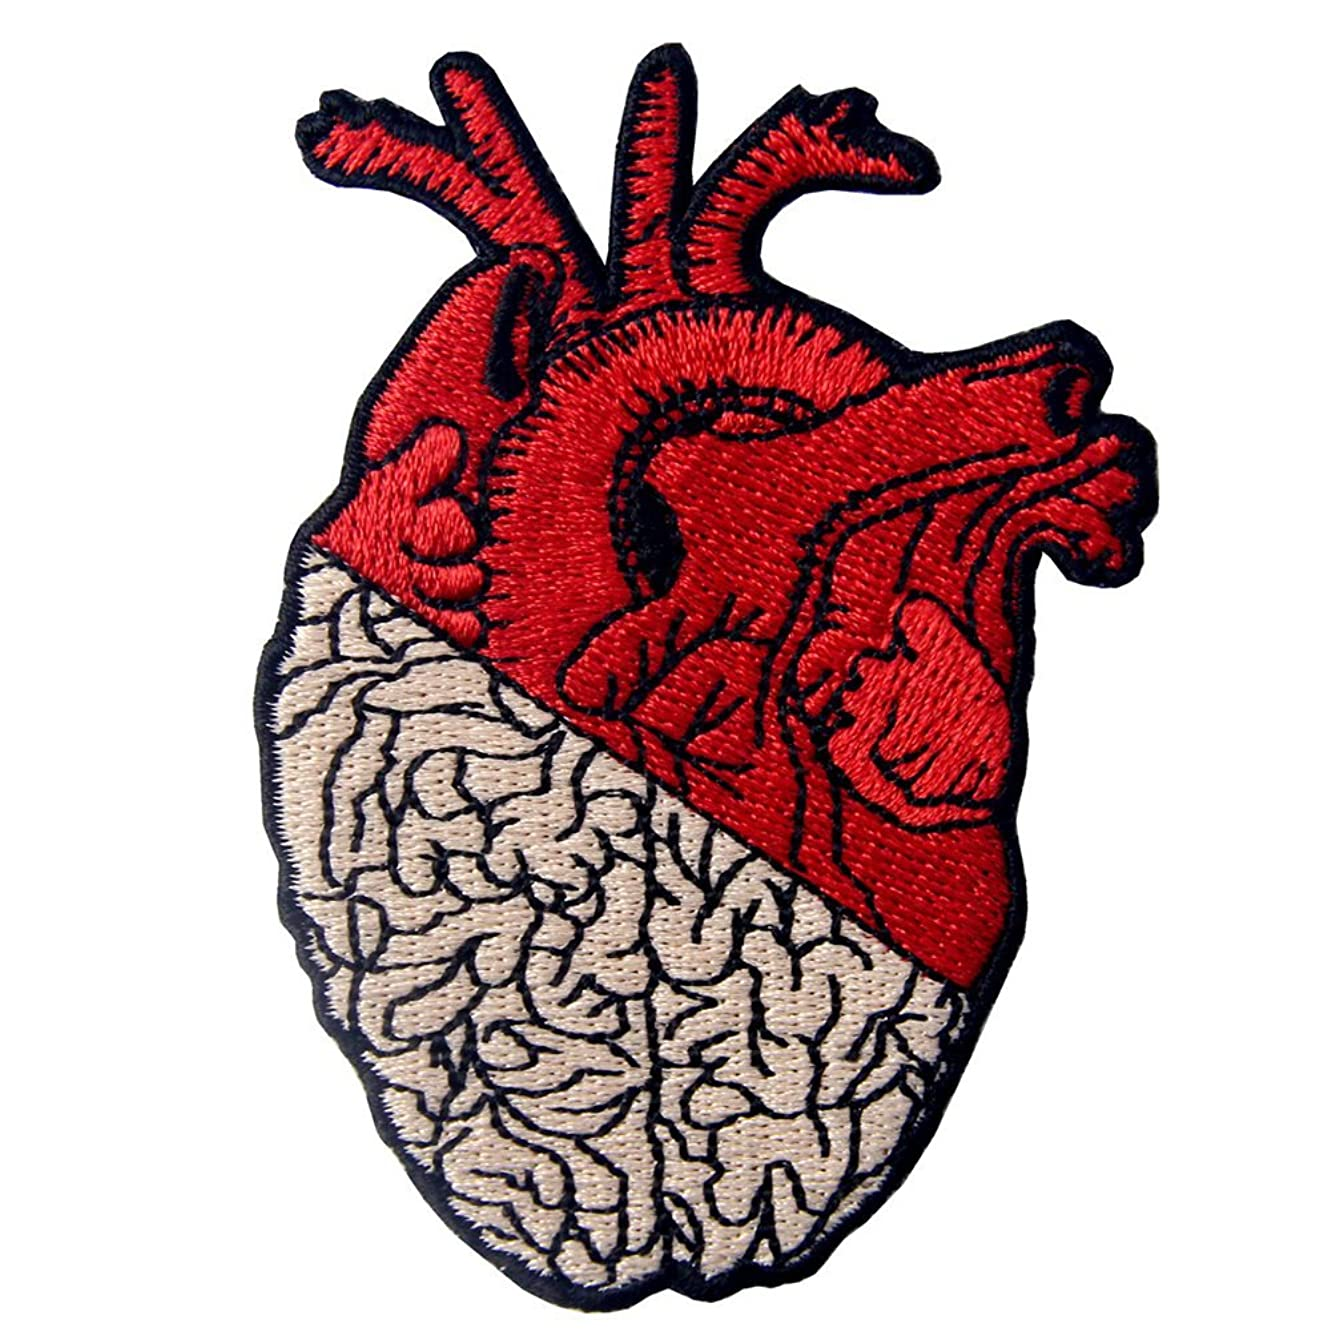 Heart & Brain Patch Embroidered Badge Iron On Sew On Emblem